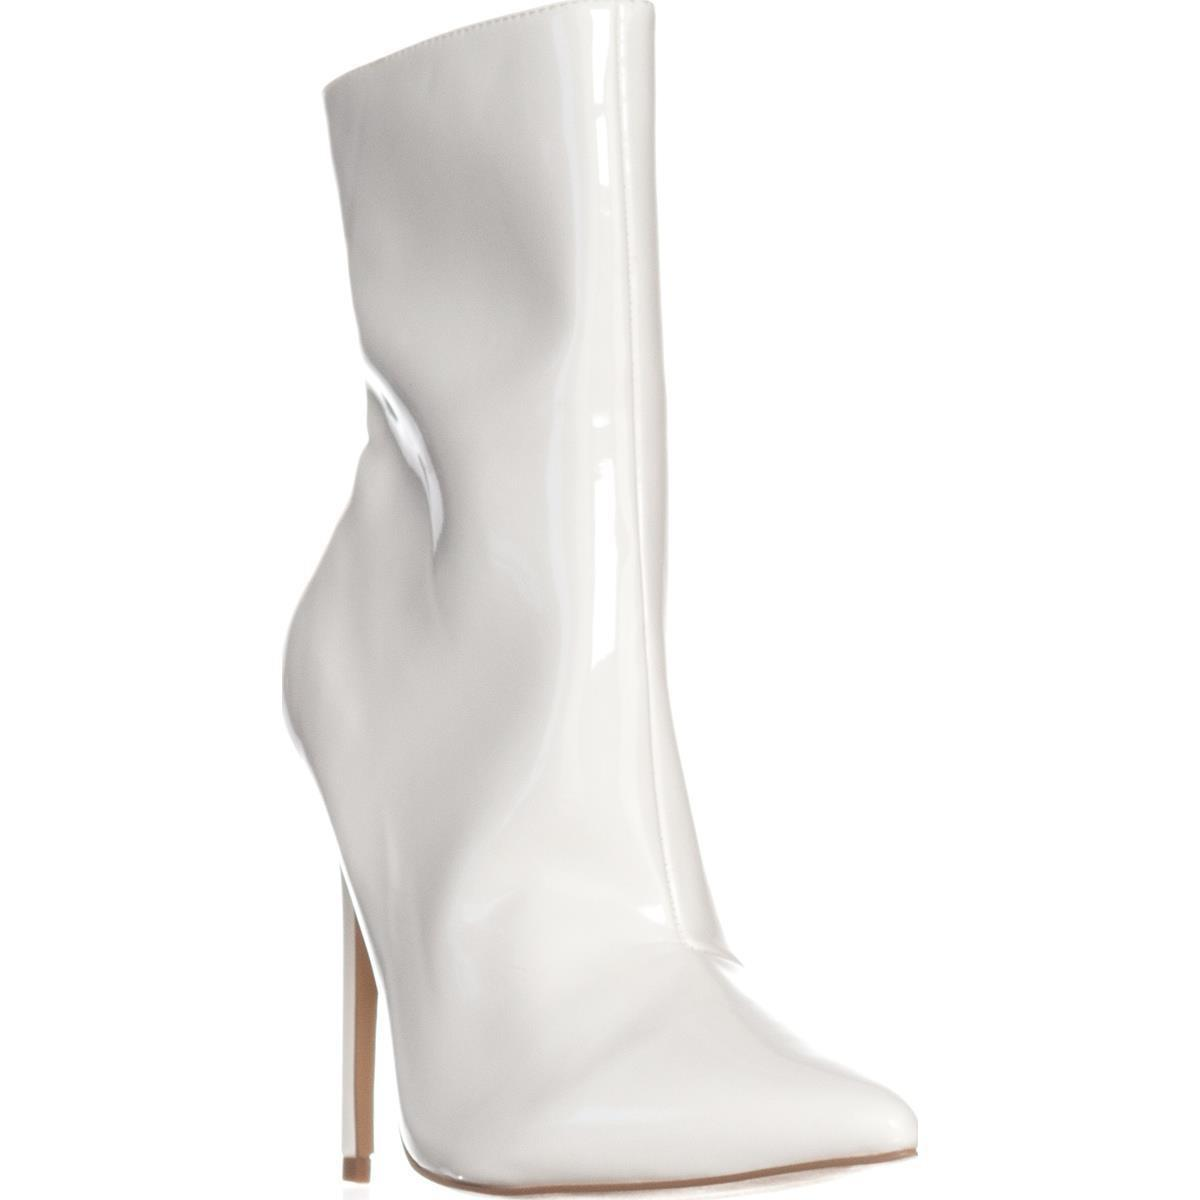 b58f876cca5 Lyst - Steve Madden Wagner Ankle Boots in White